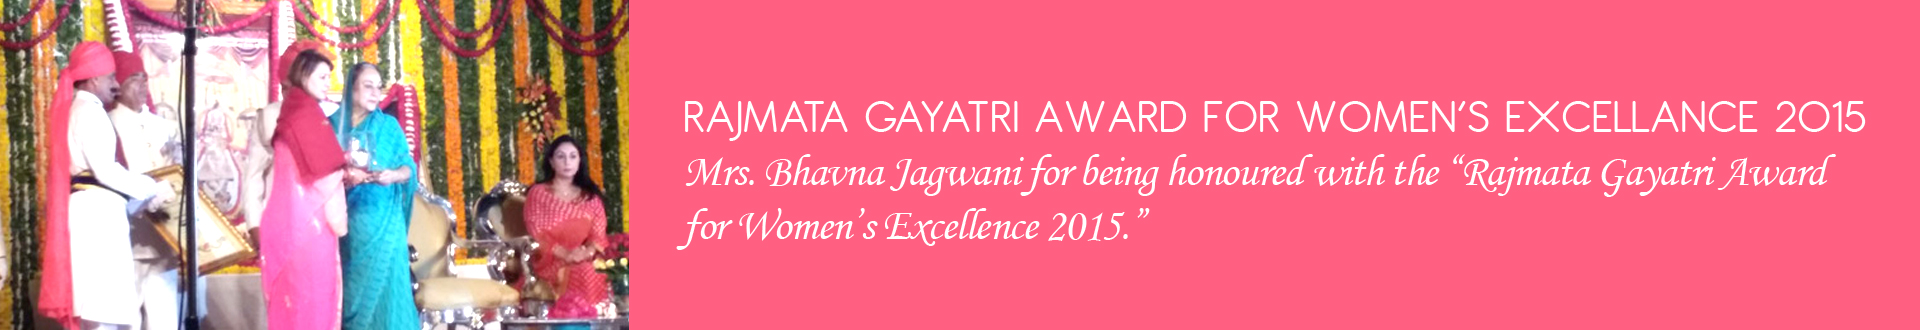 RAJMATA GAYATRI AWARD FOR WOMEN'S EXCELLANCE 2015